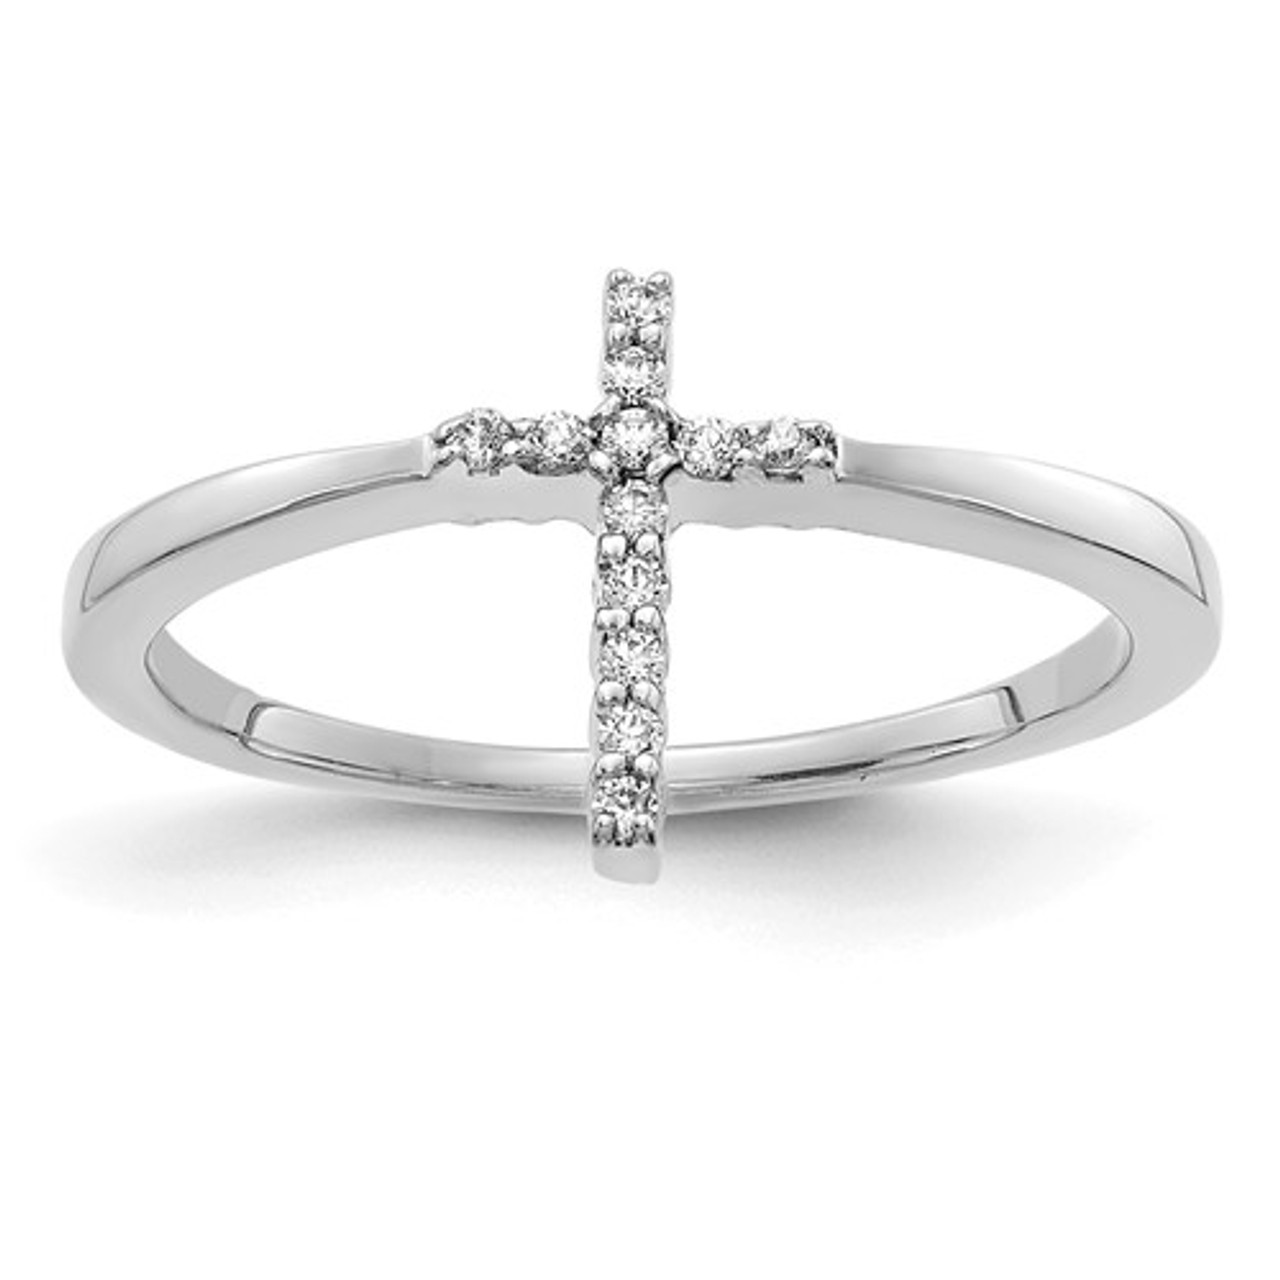 Details about  /Engagement Ring Silver 925 or Gold 14k